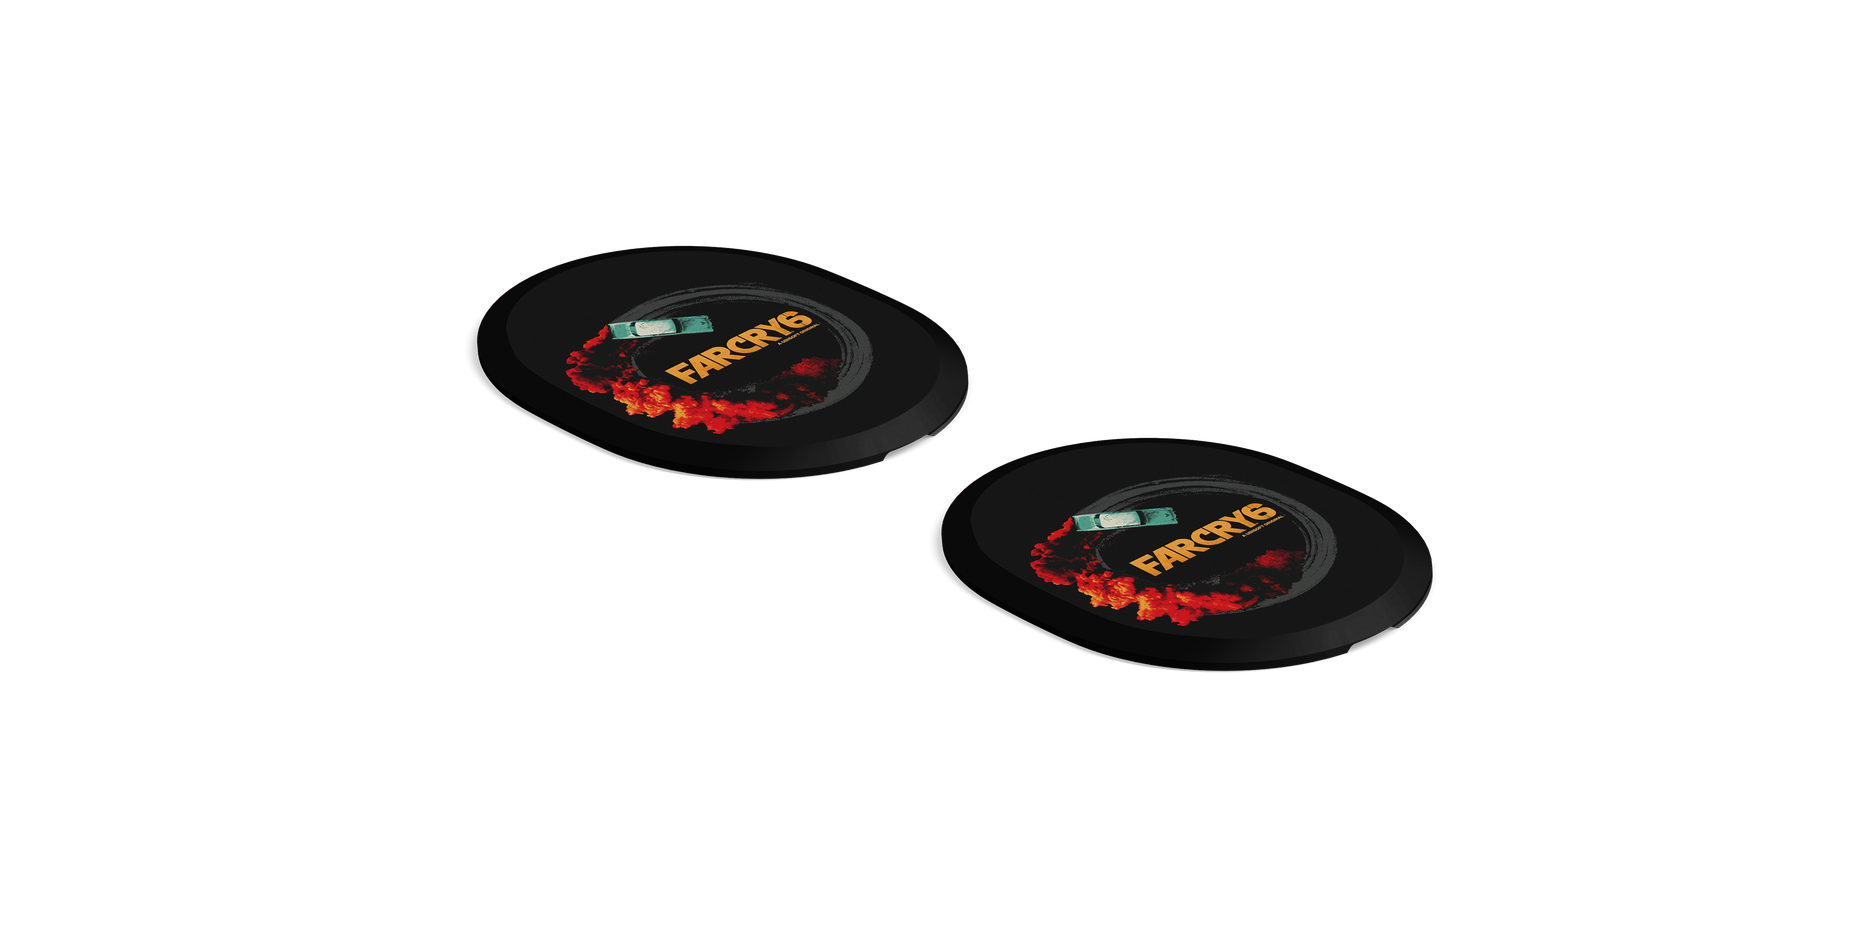 An angled view of the limited edition speaker plates with custom Far Cry 6 imagery.